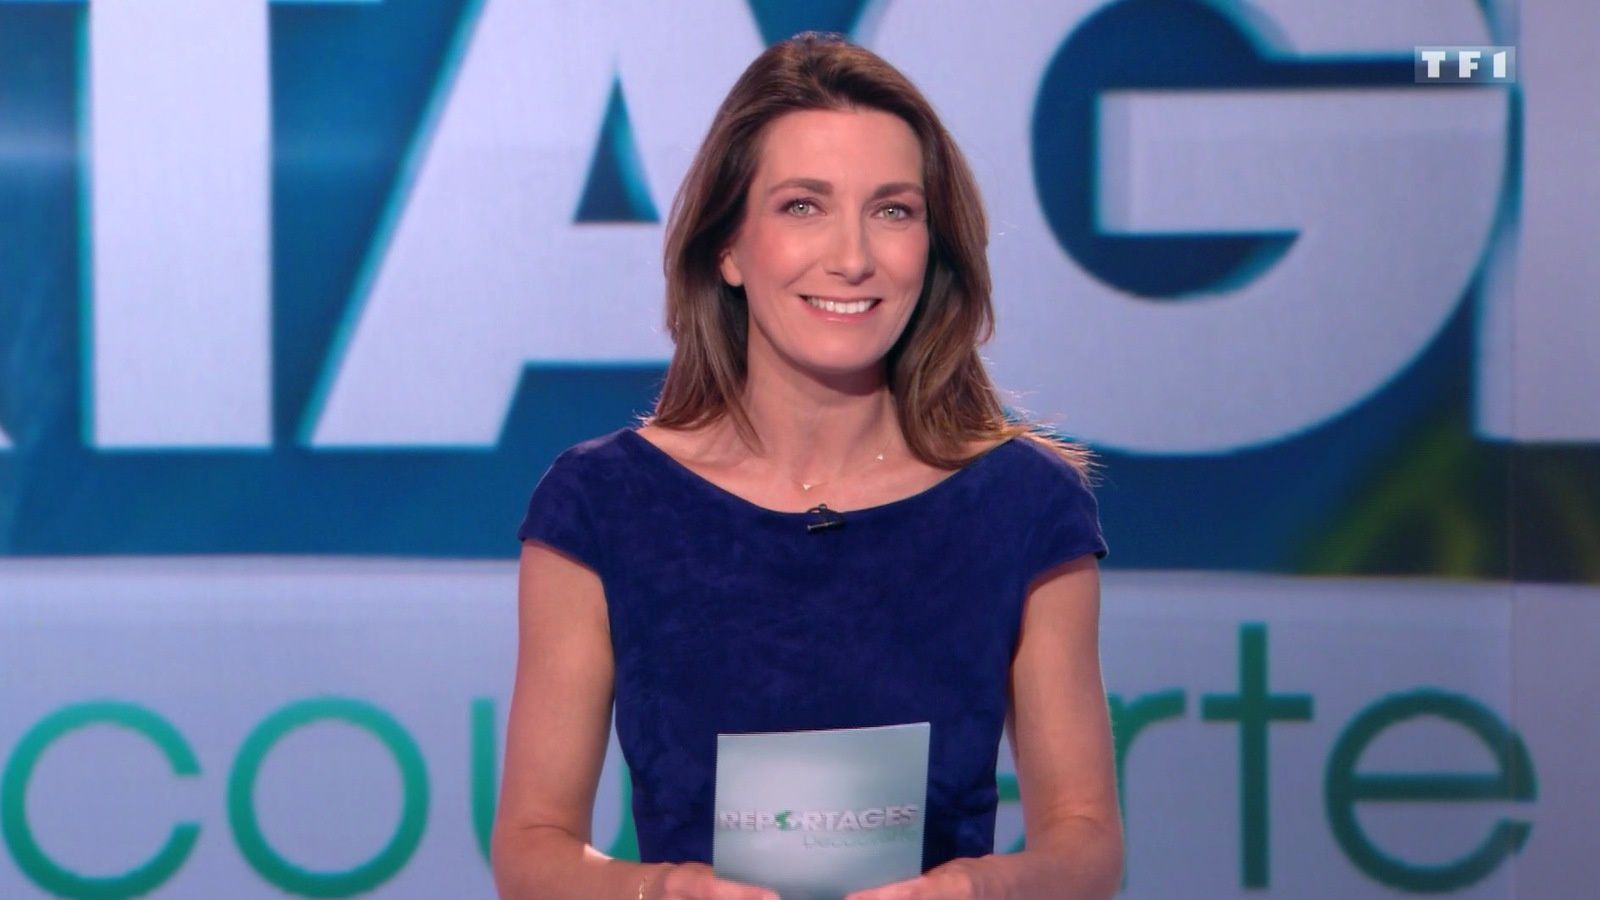 📸6 ANNE-CLAIRE COUDRAY @ACCoudray @TF1 pour REPORTAGES DECOUVERTE ce midi #vuesalatele